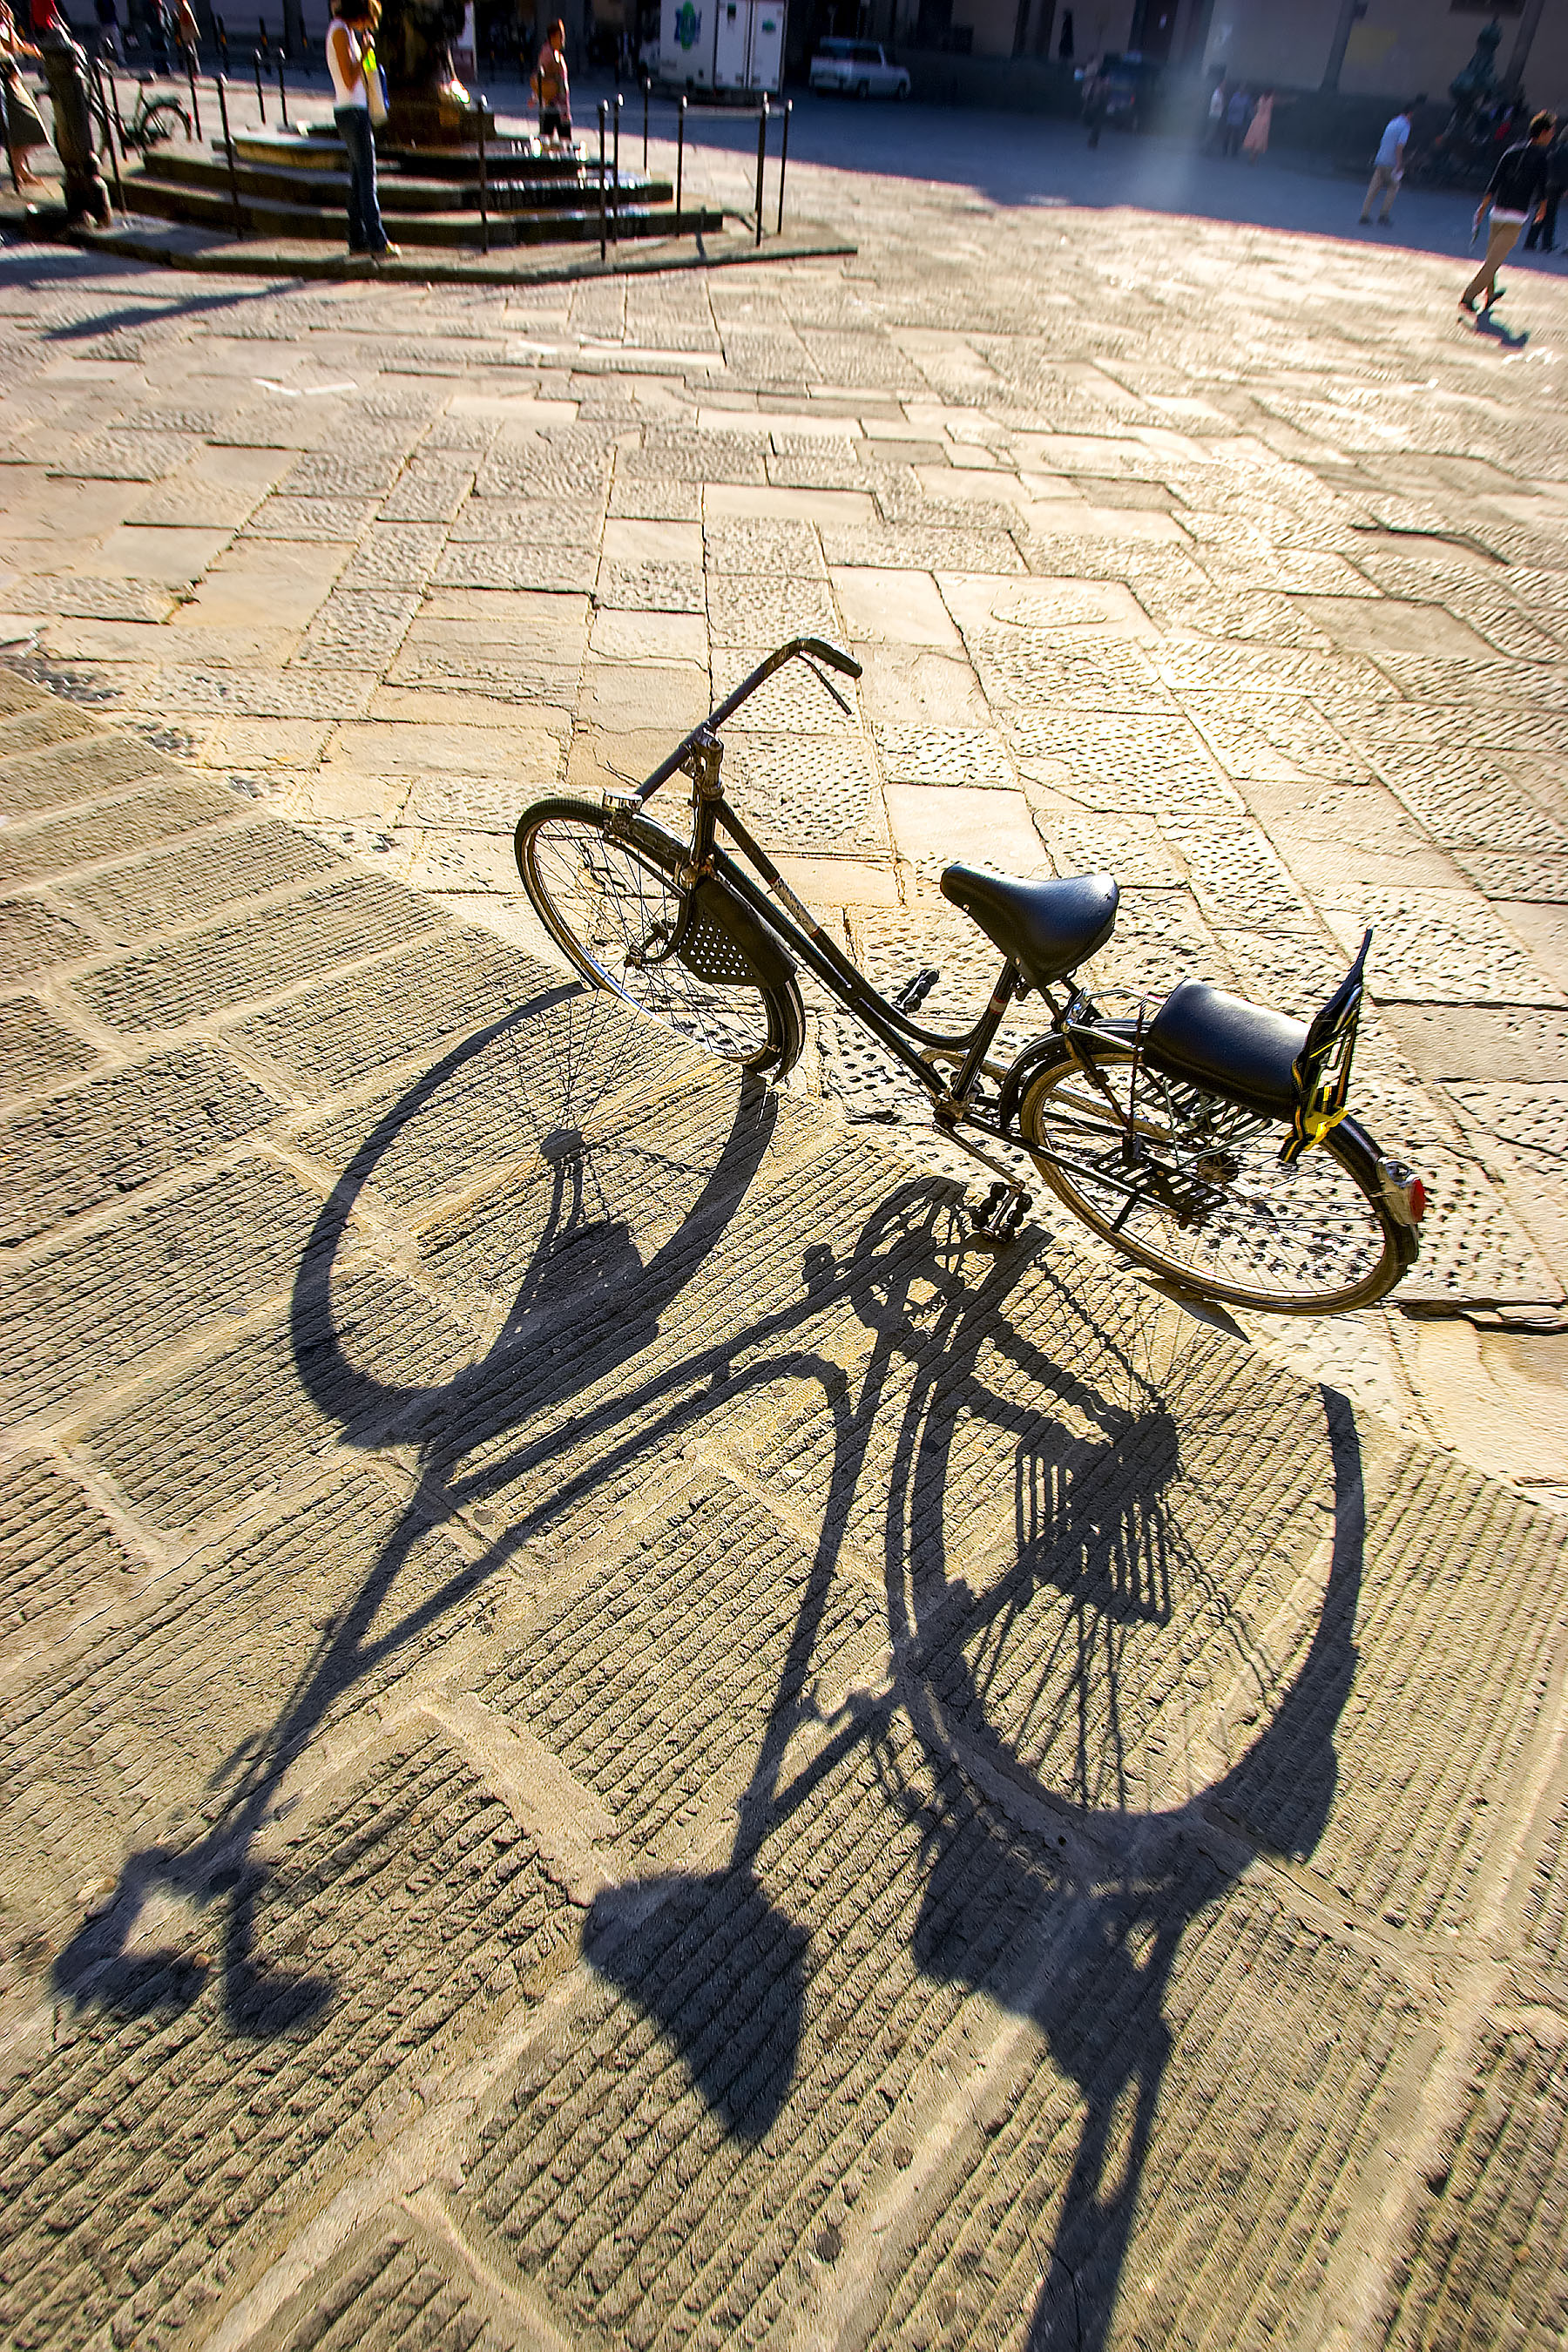 Bicycle in Plaza, piazza in Florence Italy with long shadow on cobblestone